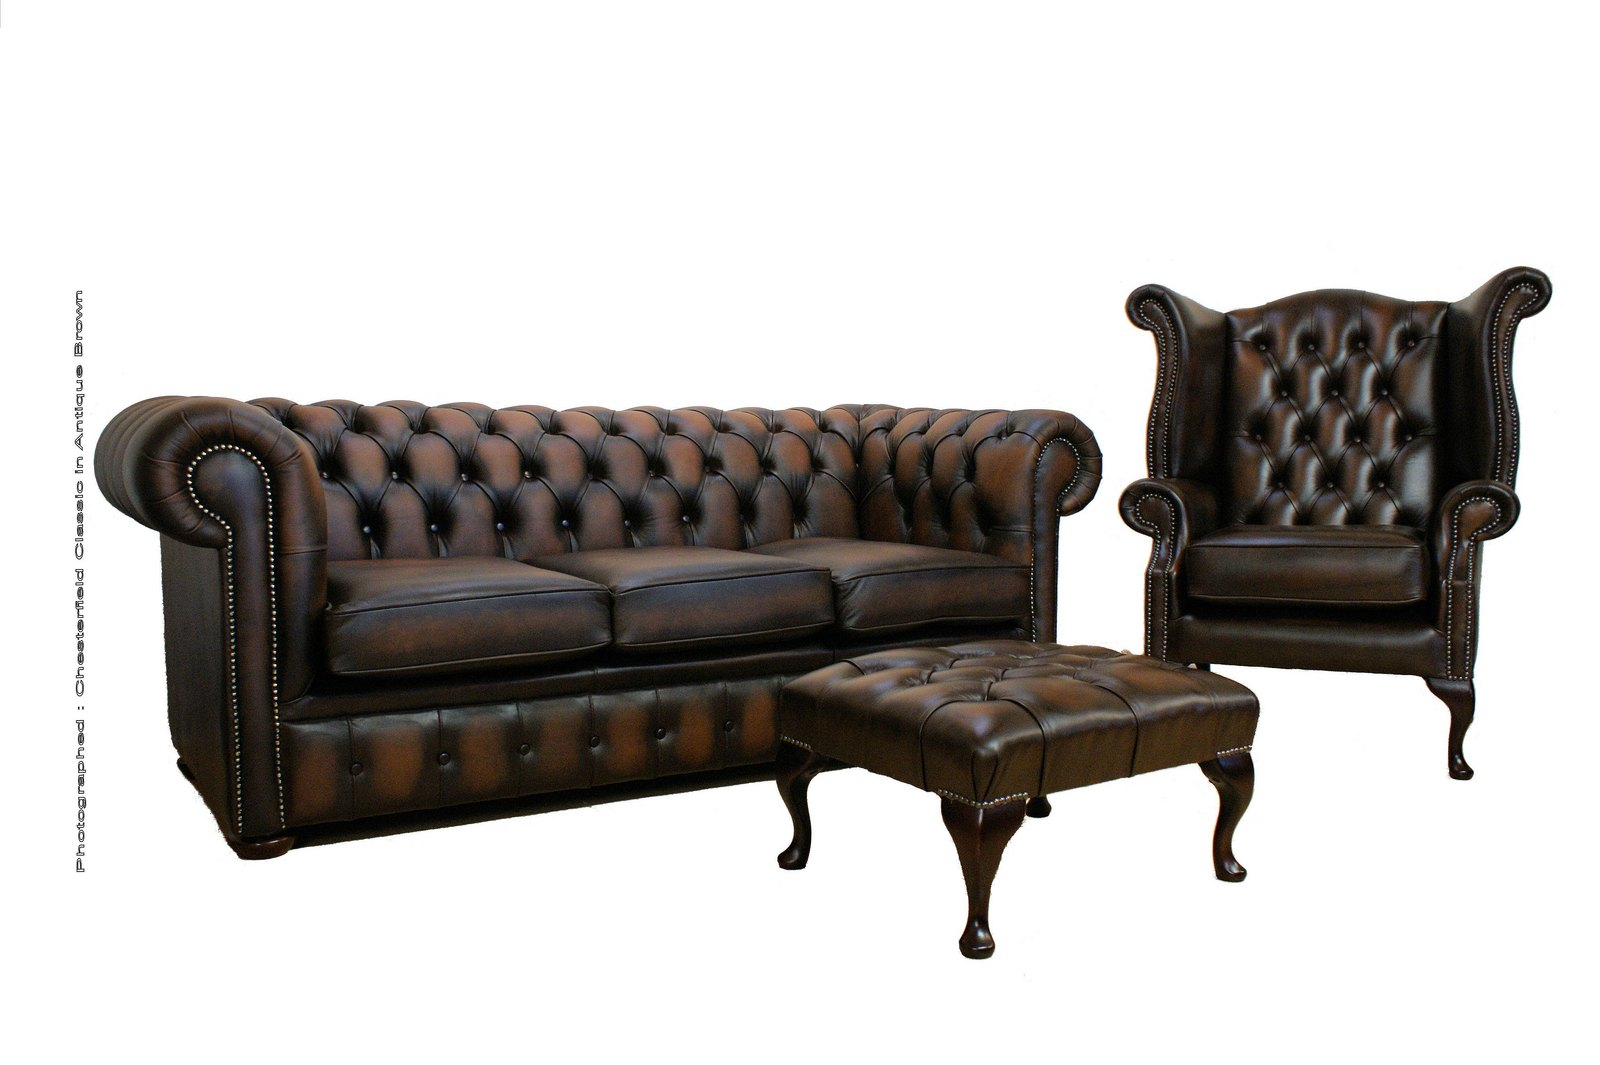 Second Hand Chesterfield Could Do The Job